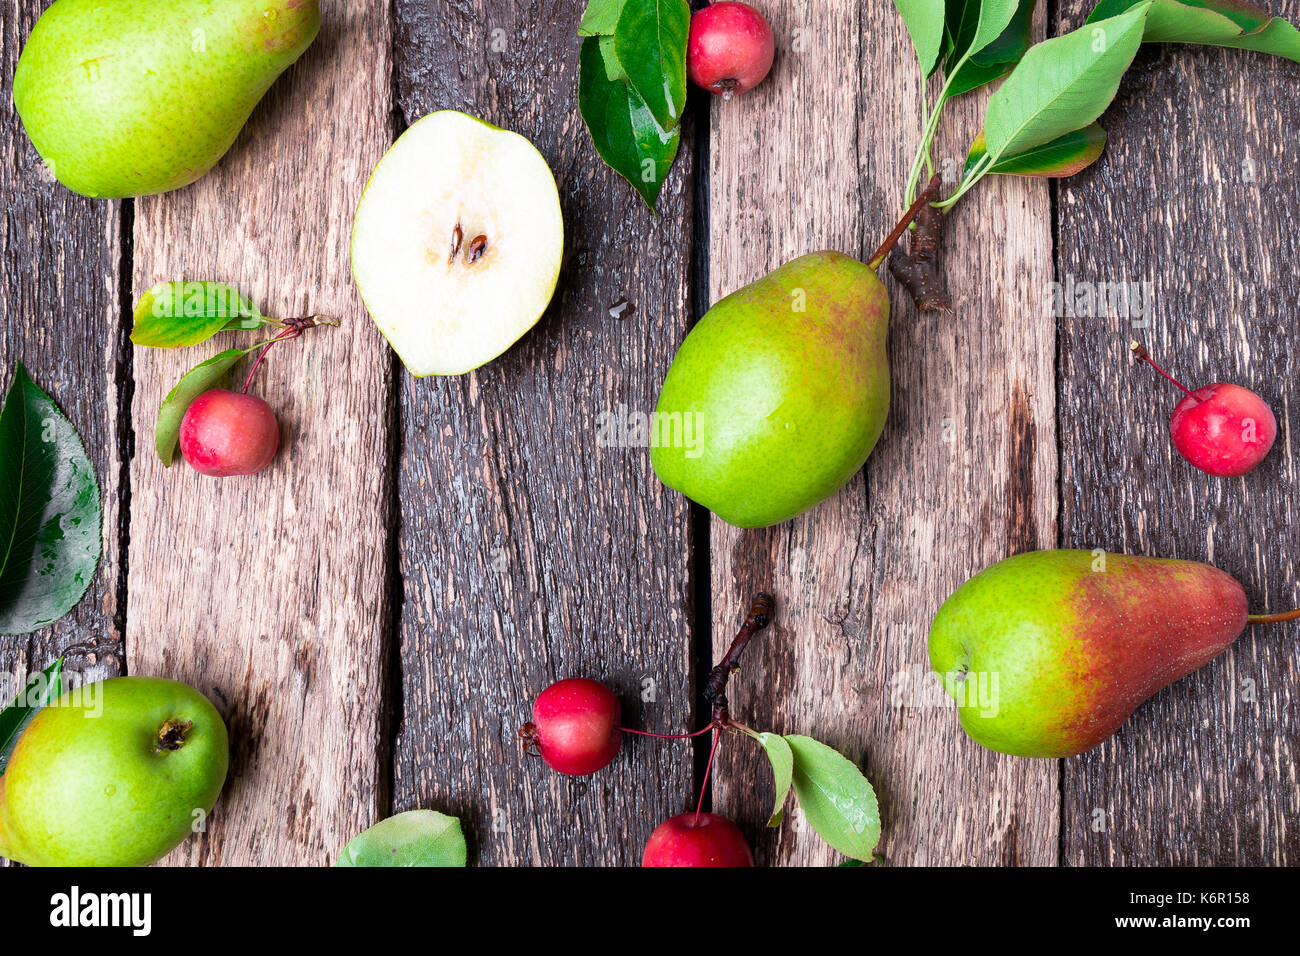 Pear and small apple on wooden rustic background. Top view. Frame. Autumn harvest - Stock Image